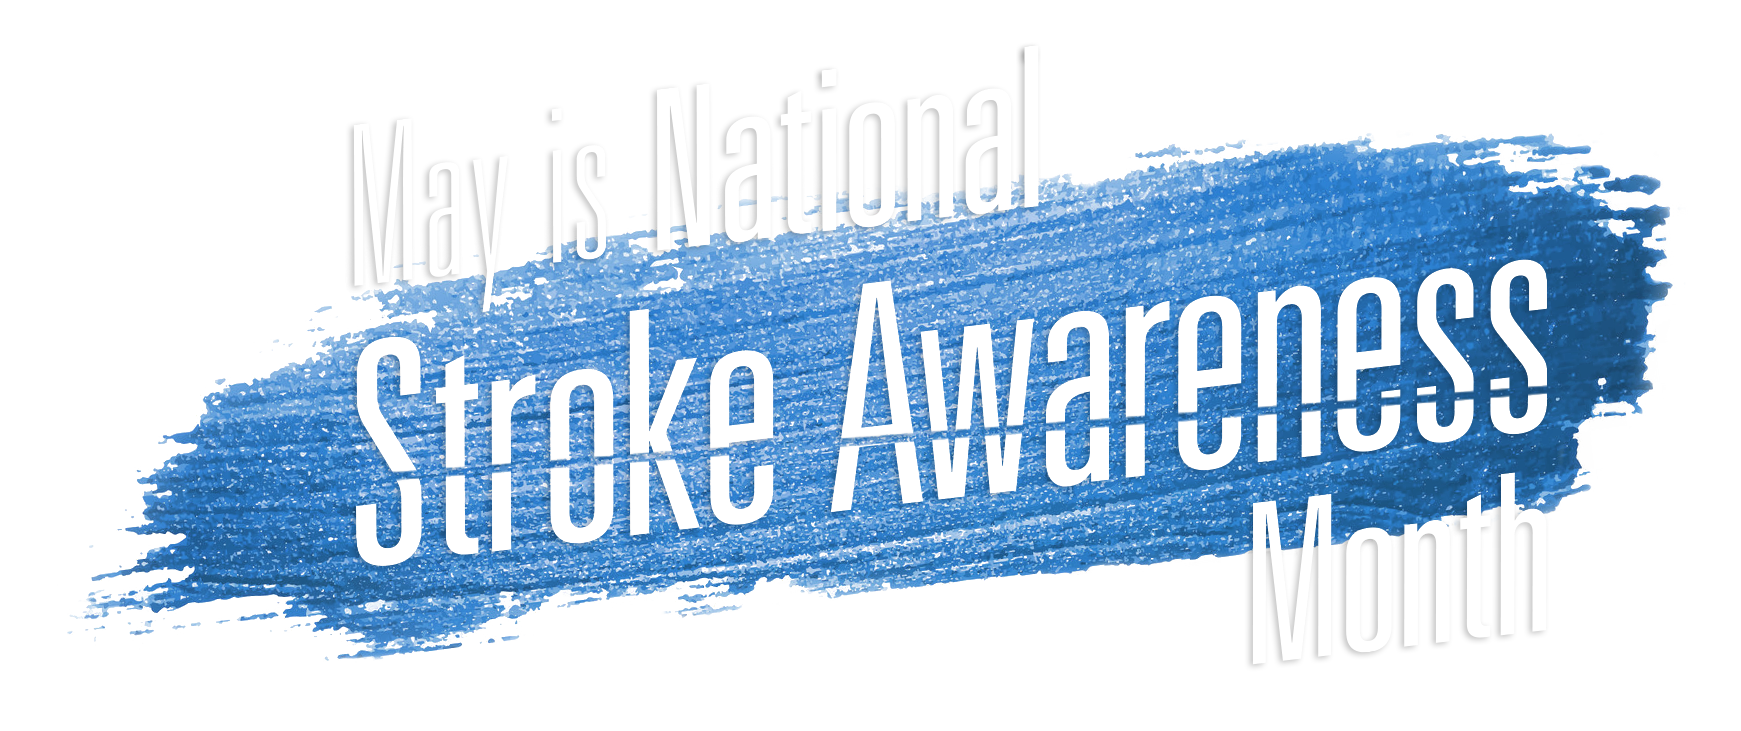 May Is National Stroke Awareness Month